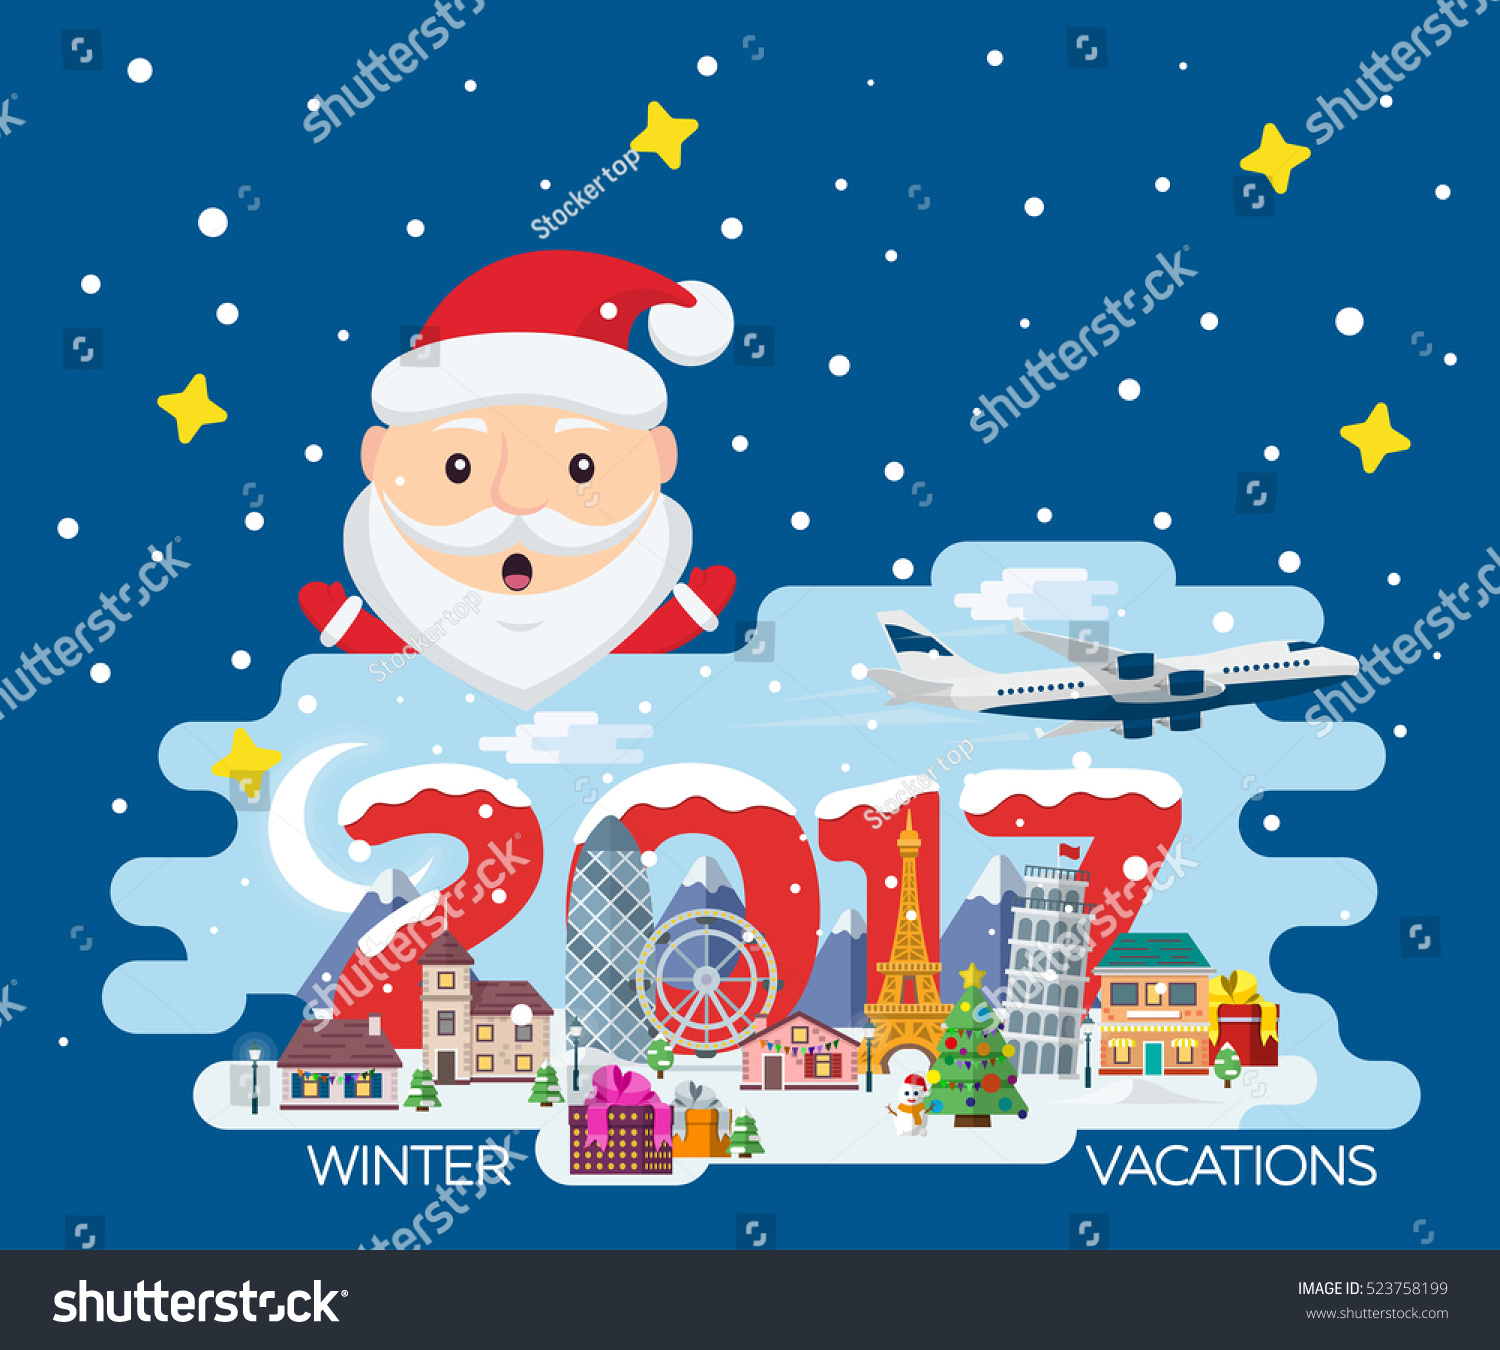 Easy Year To Travel On Christmas: Merry Christmas Banner Flat Style Traveling Stock Vector